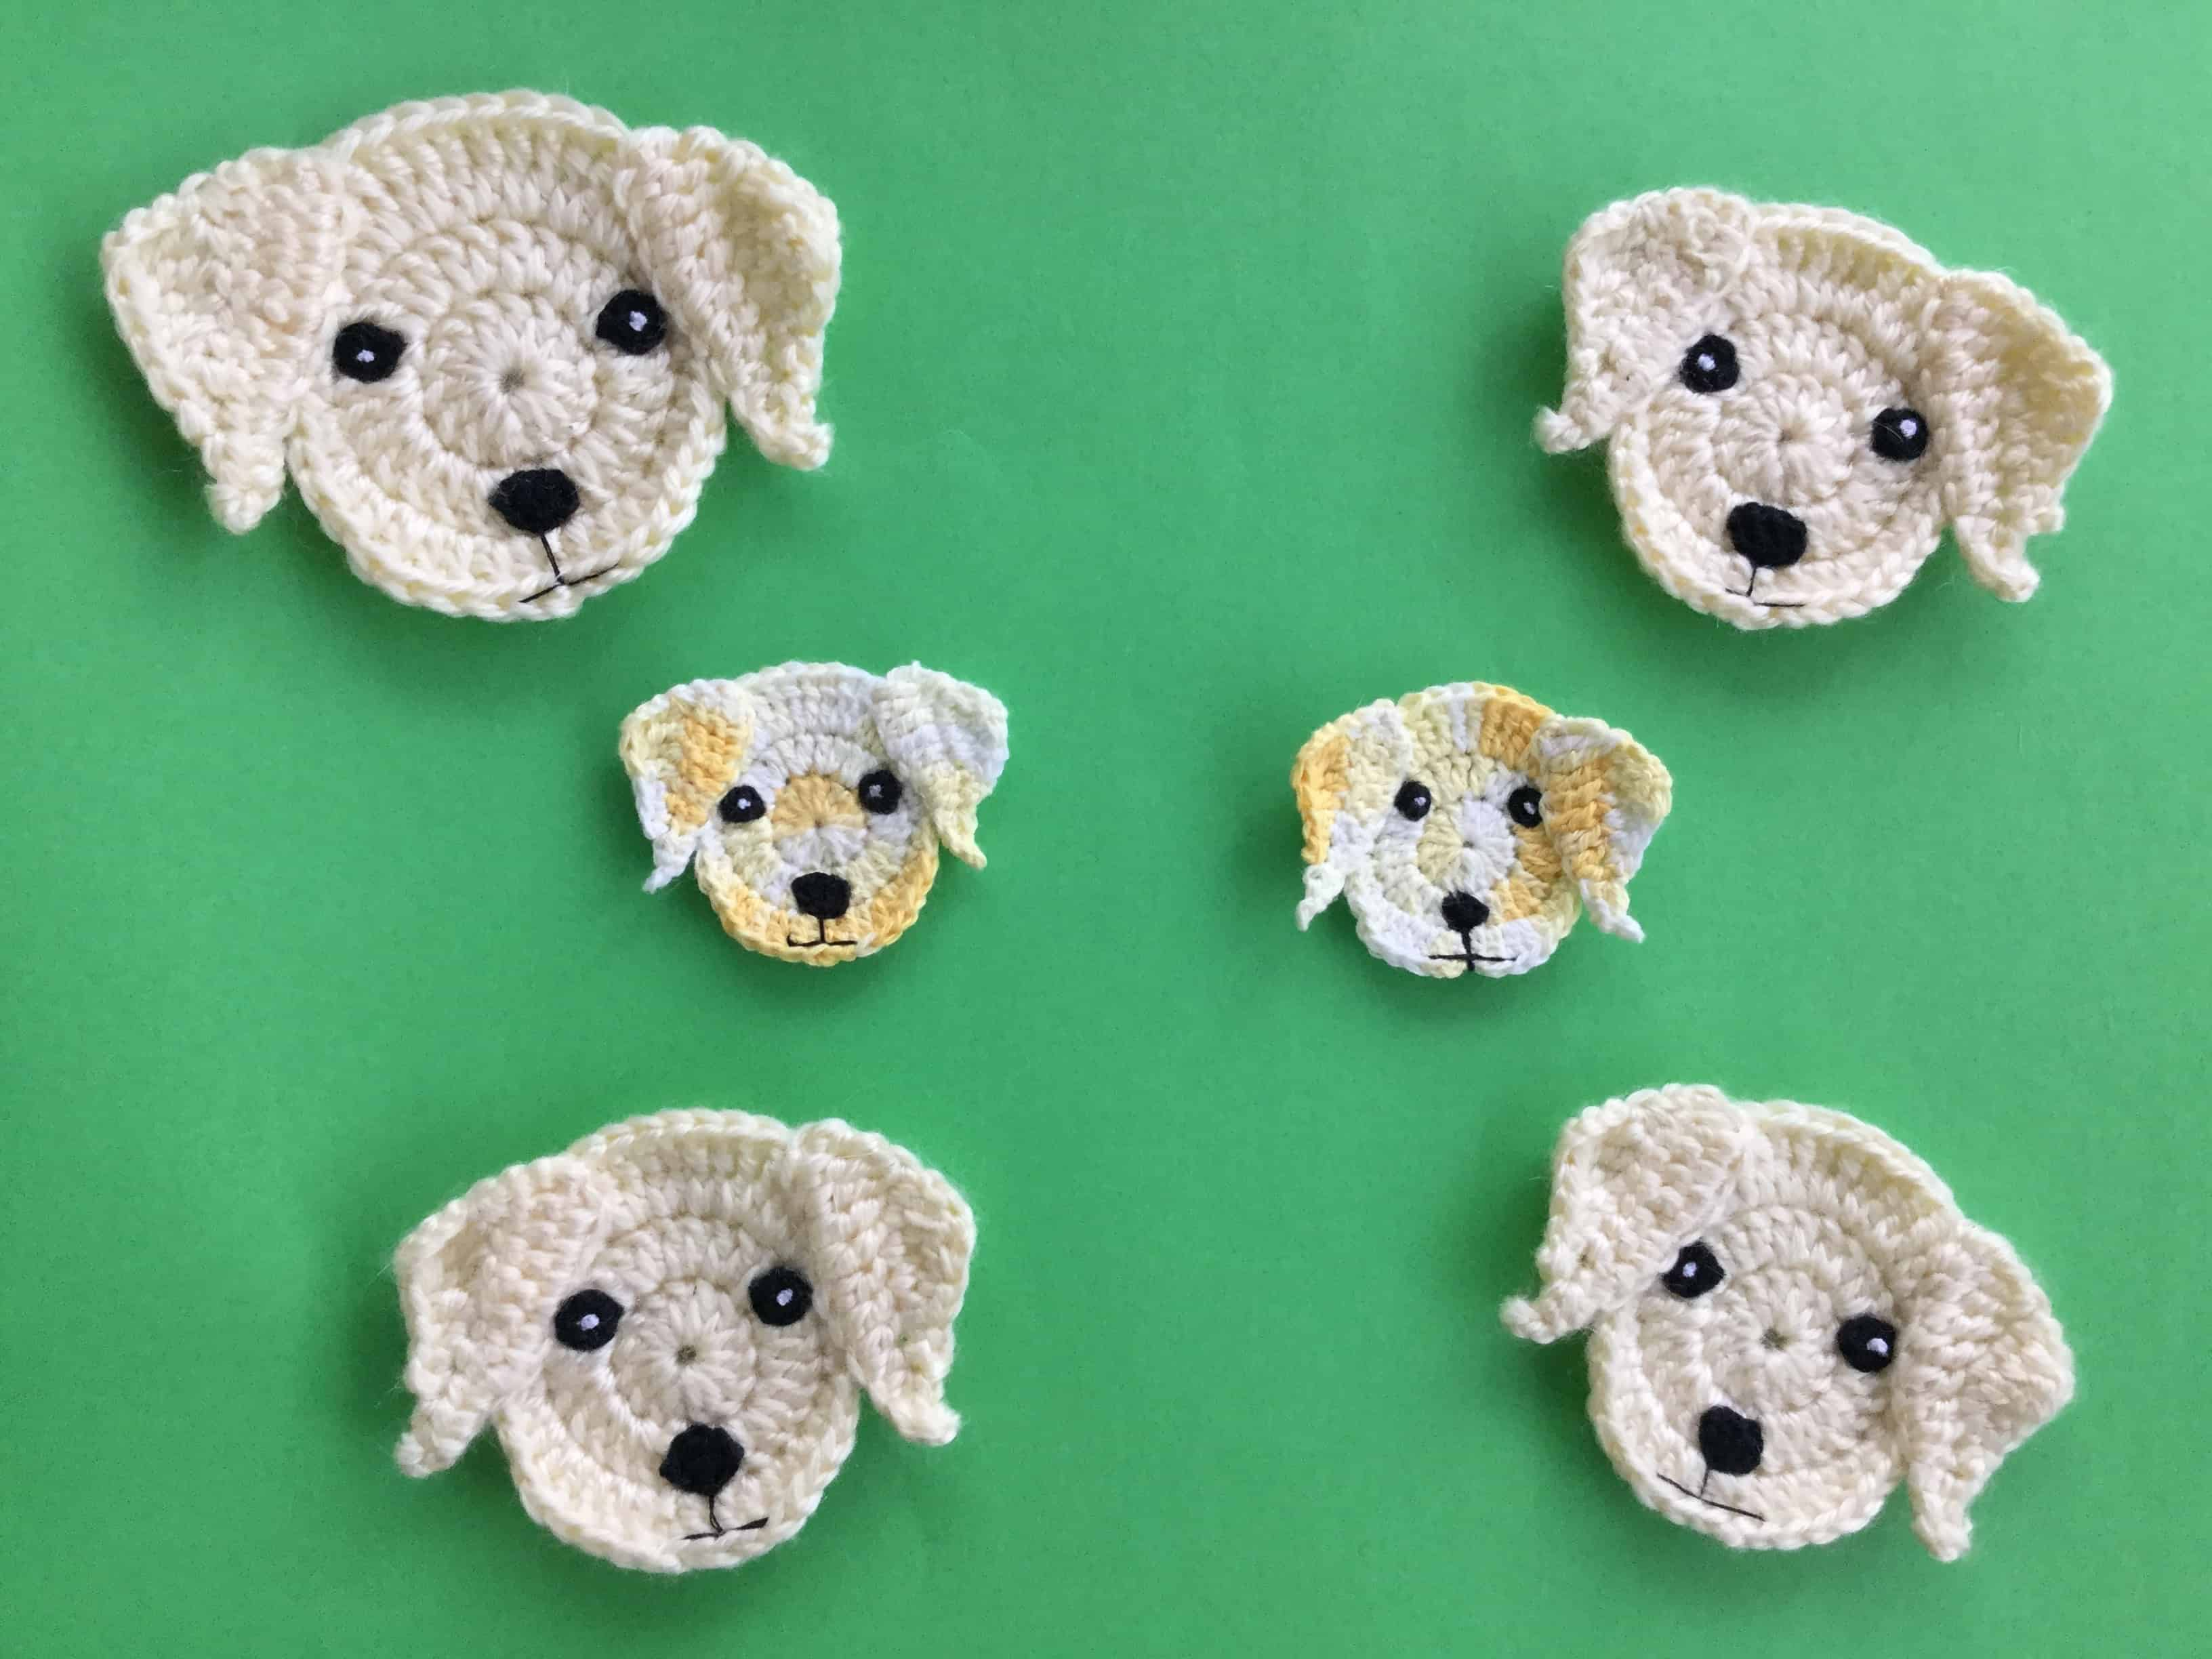 Finished crochet Labrador head group landscape